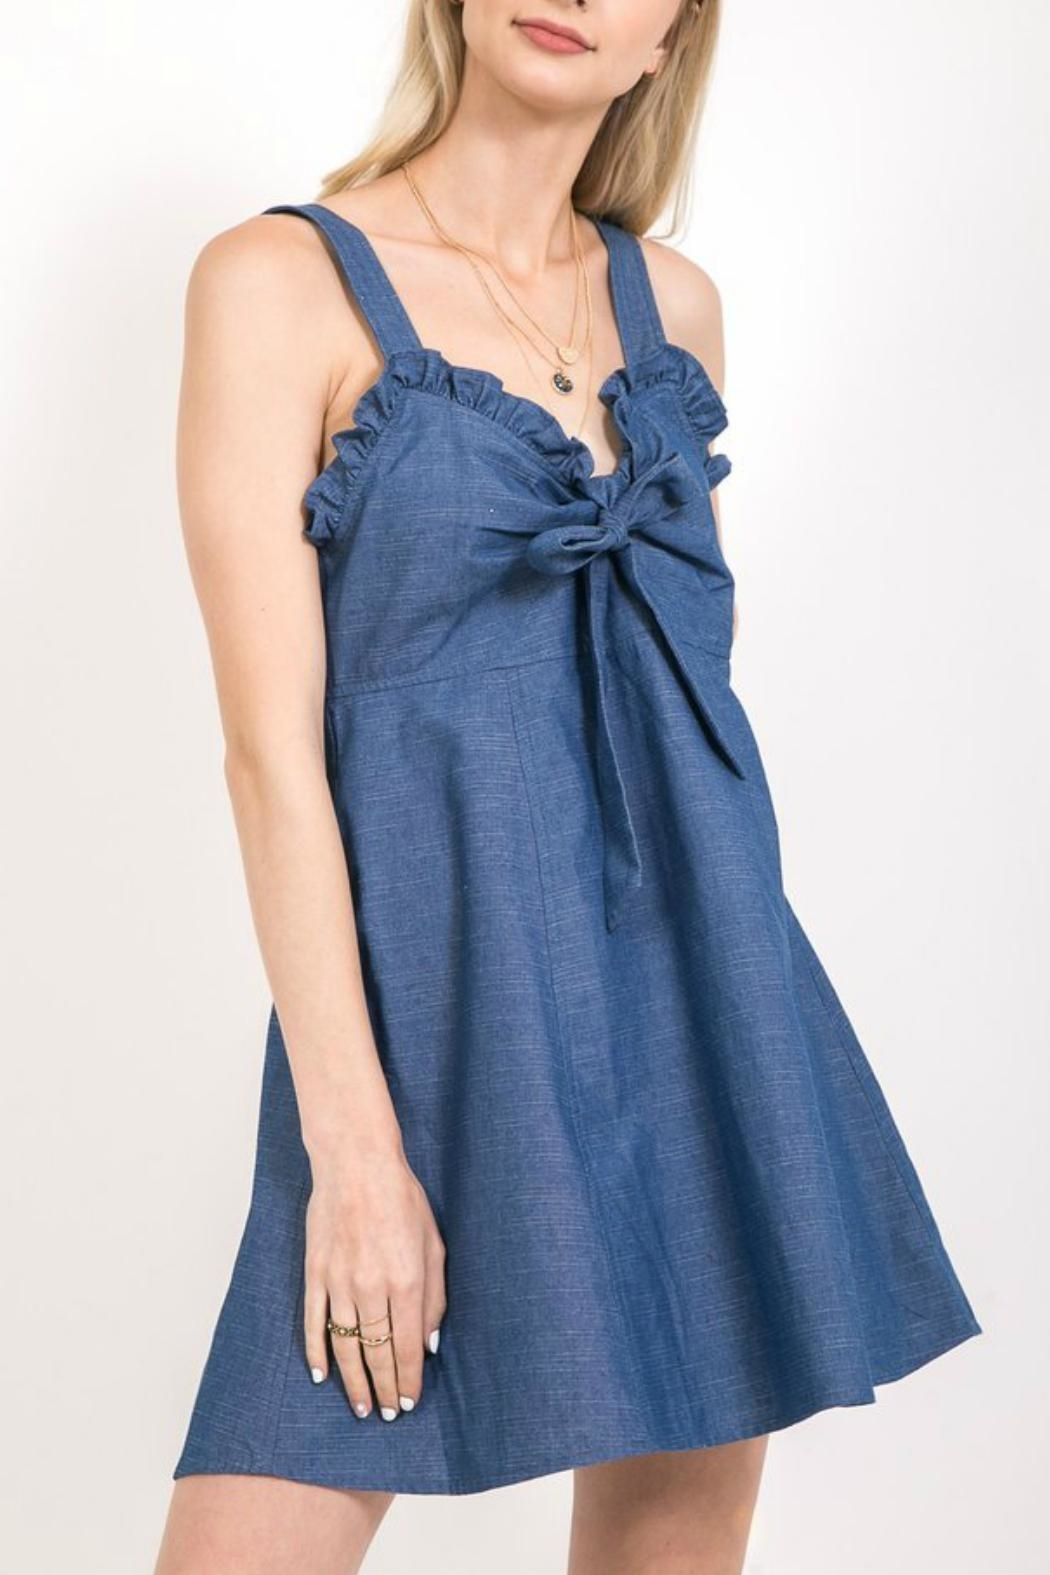 Very J Ruffle Denim Dress - Front Cropped Image